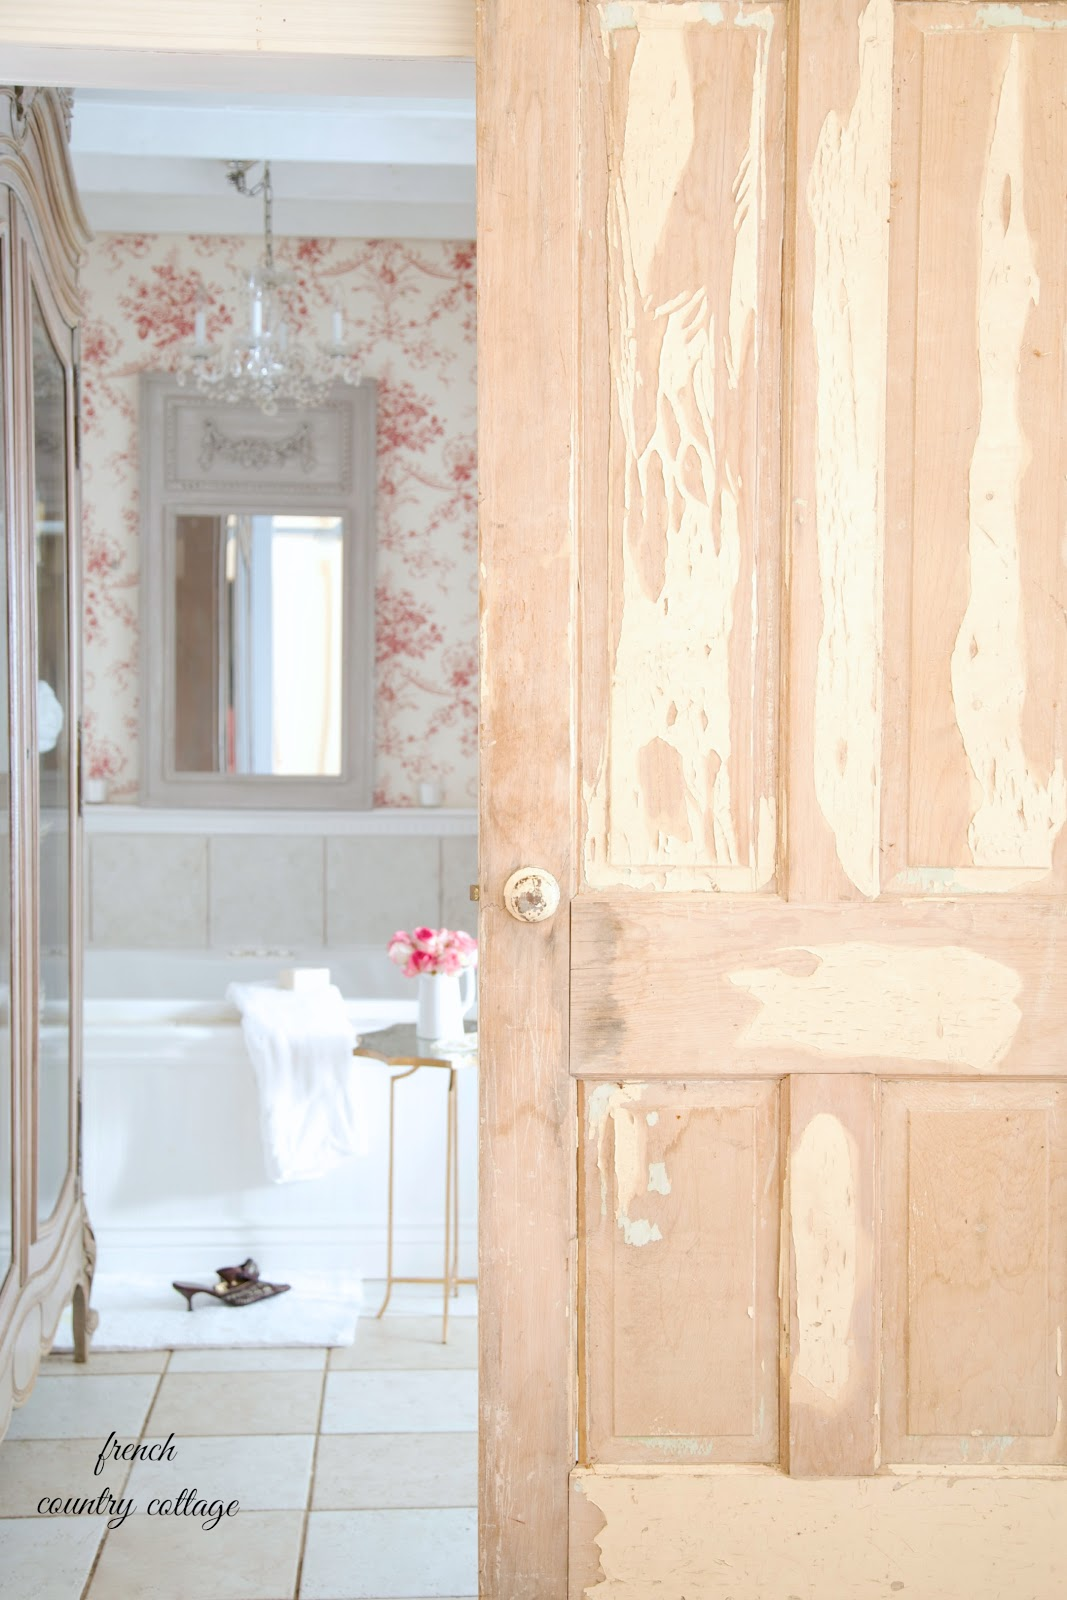 7 Inspirations For Marble And Wallpaper Bathroom Designs French